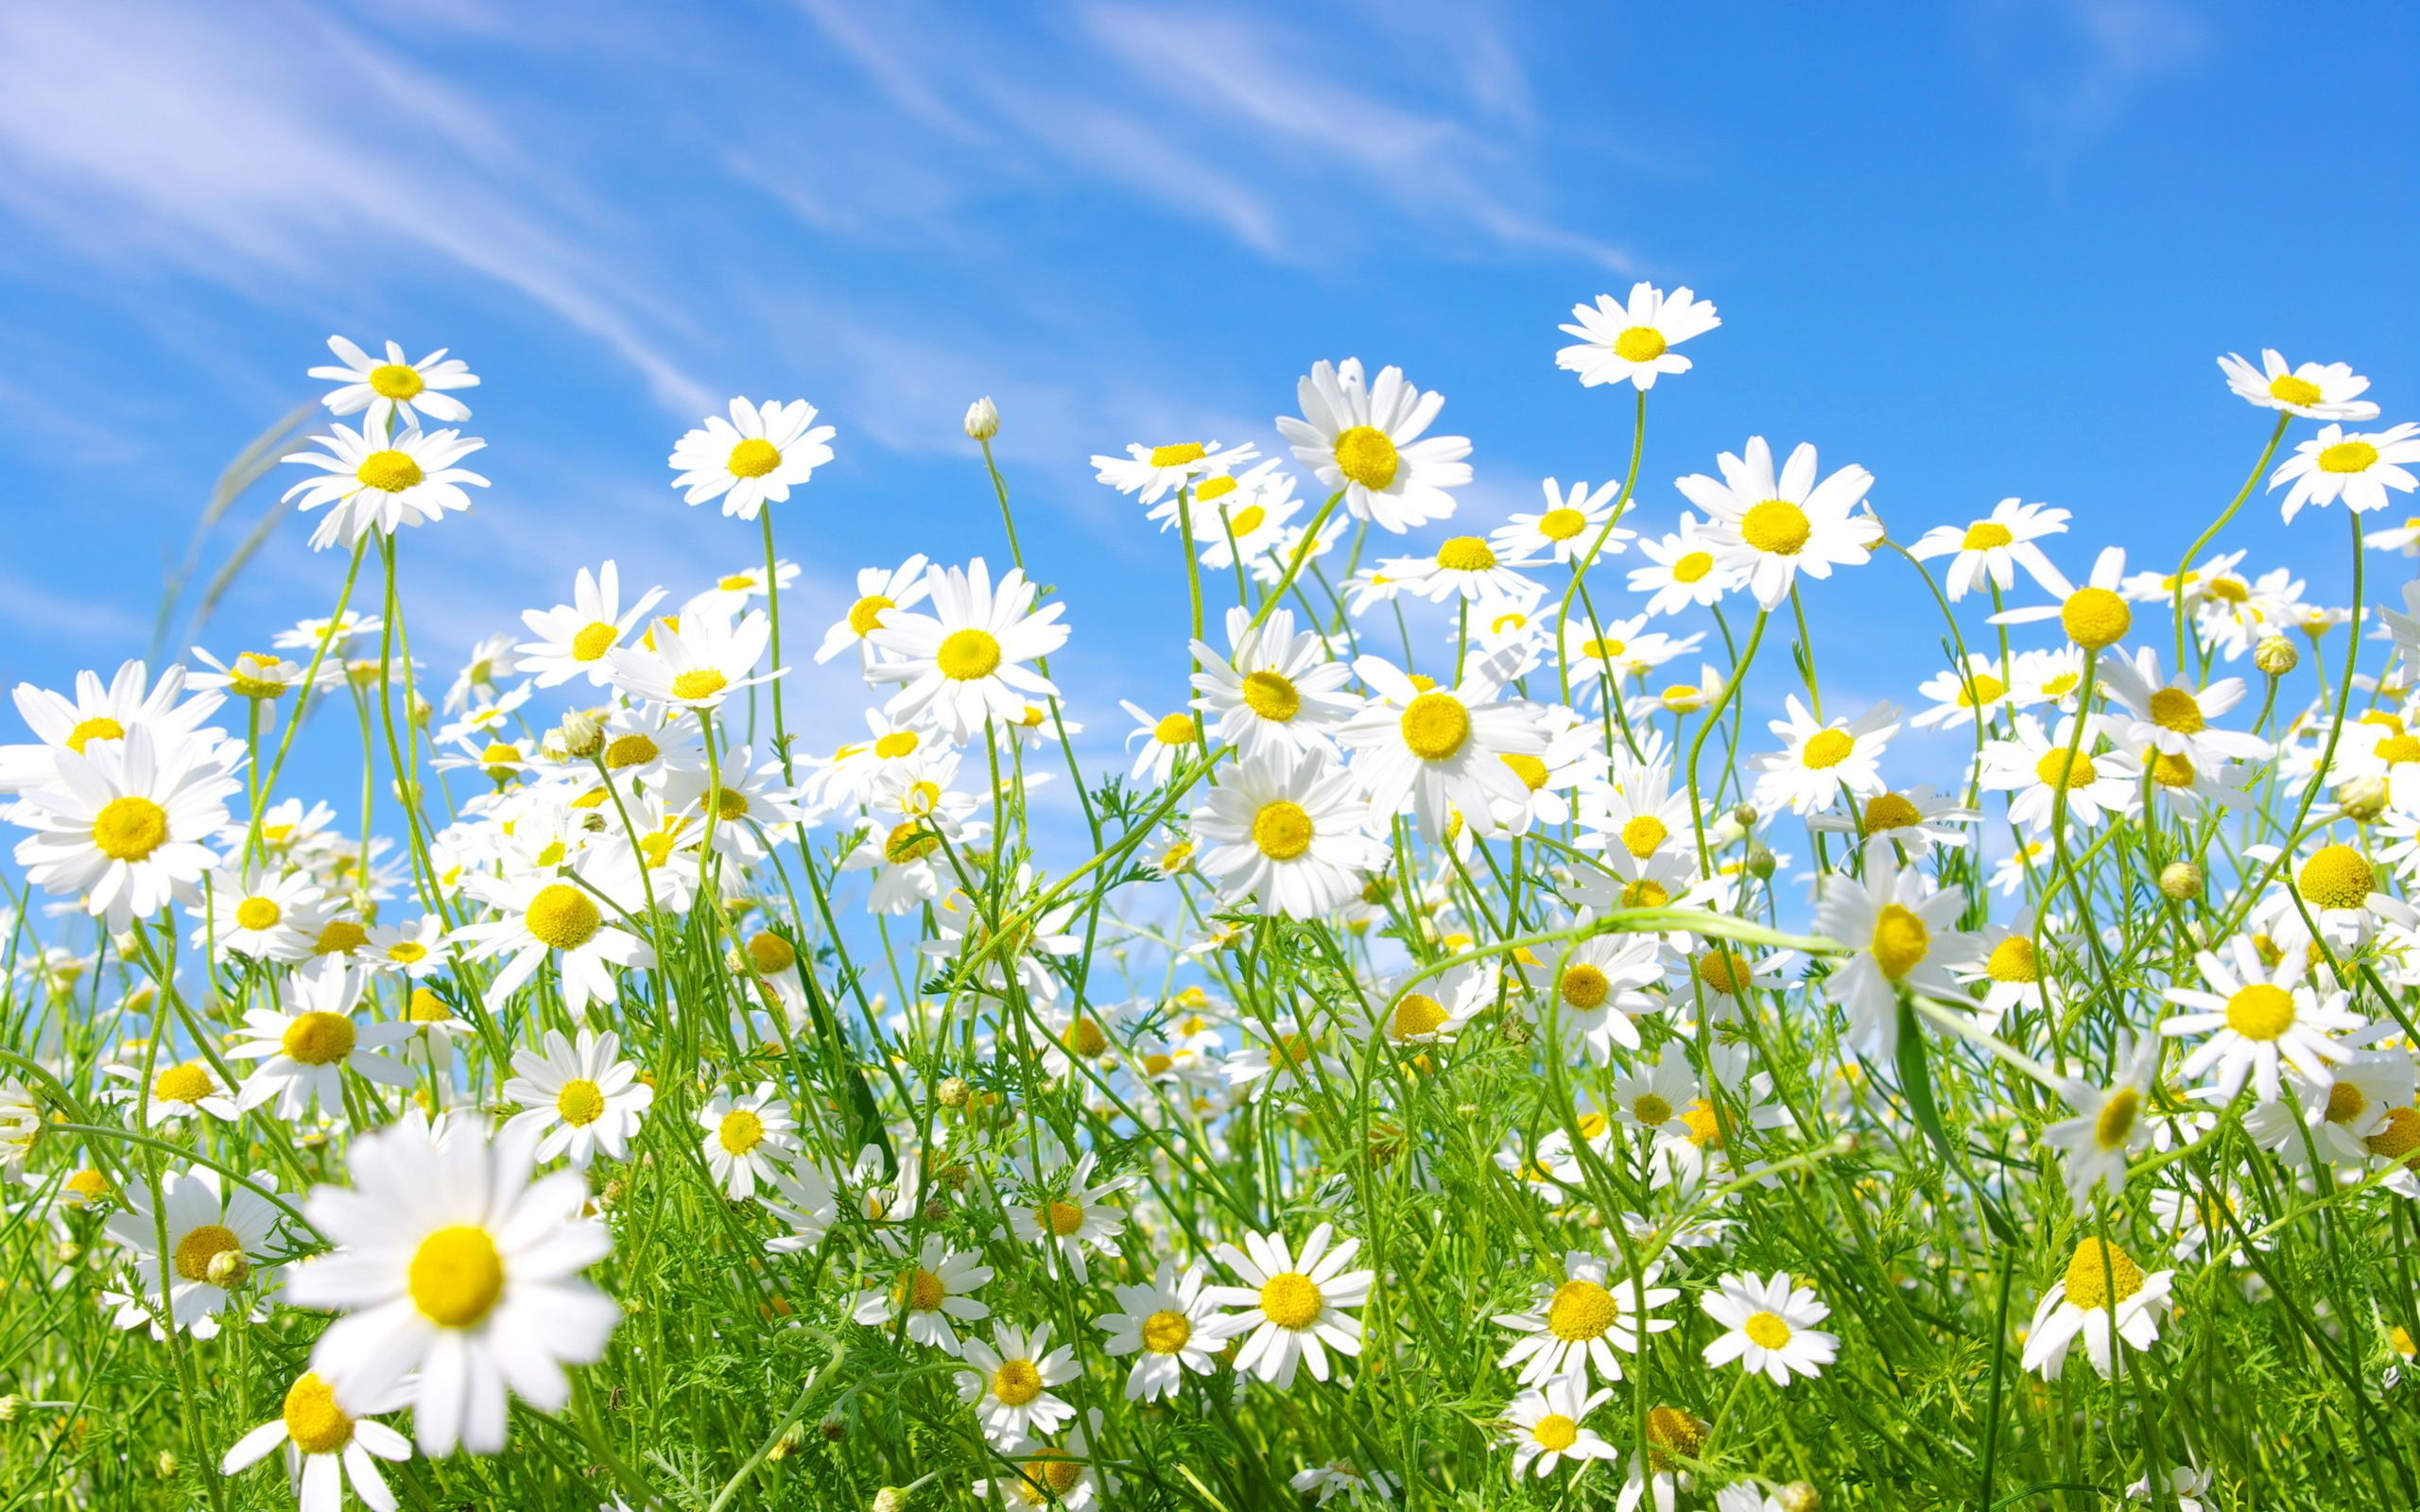 Field Of Daisies Full Size Image 2560 X 1600 1298 51 Kb Source Daisy Wallpaper Spring Flowers Wallpaper Daisy Field